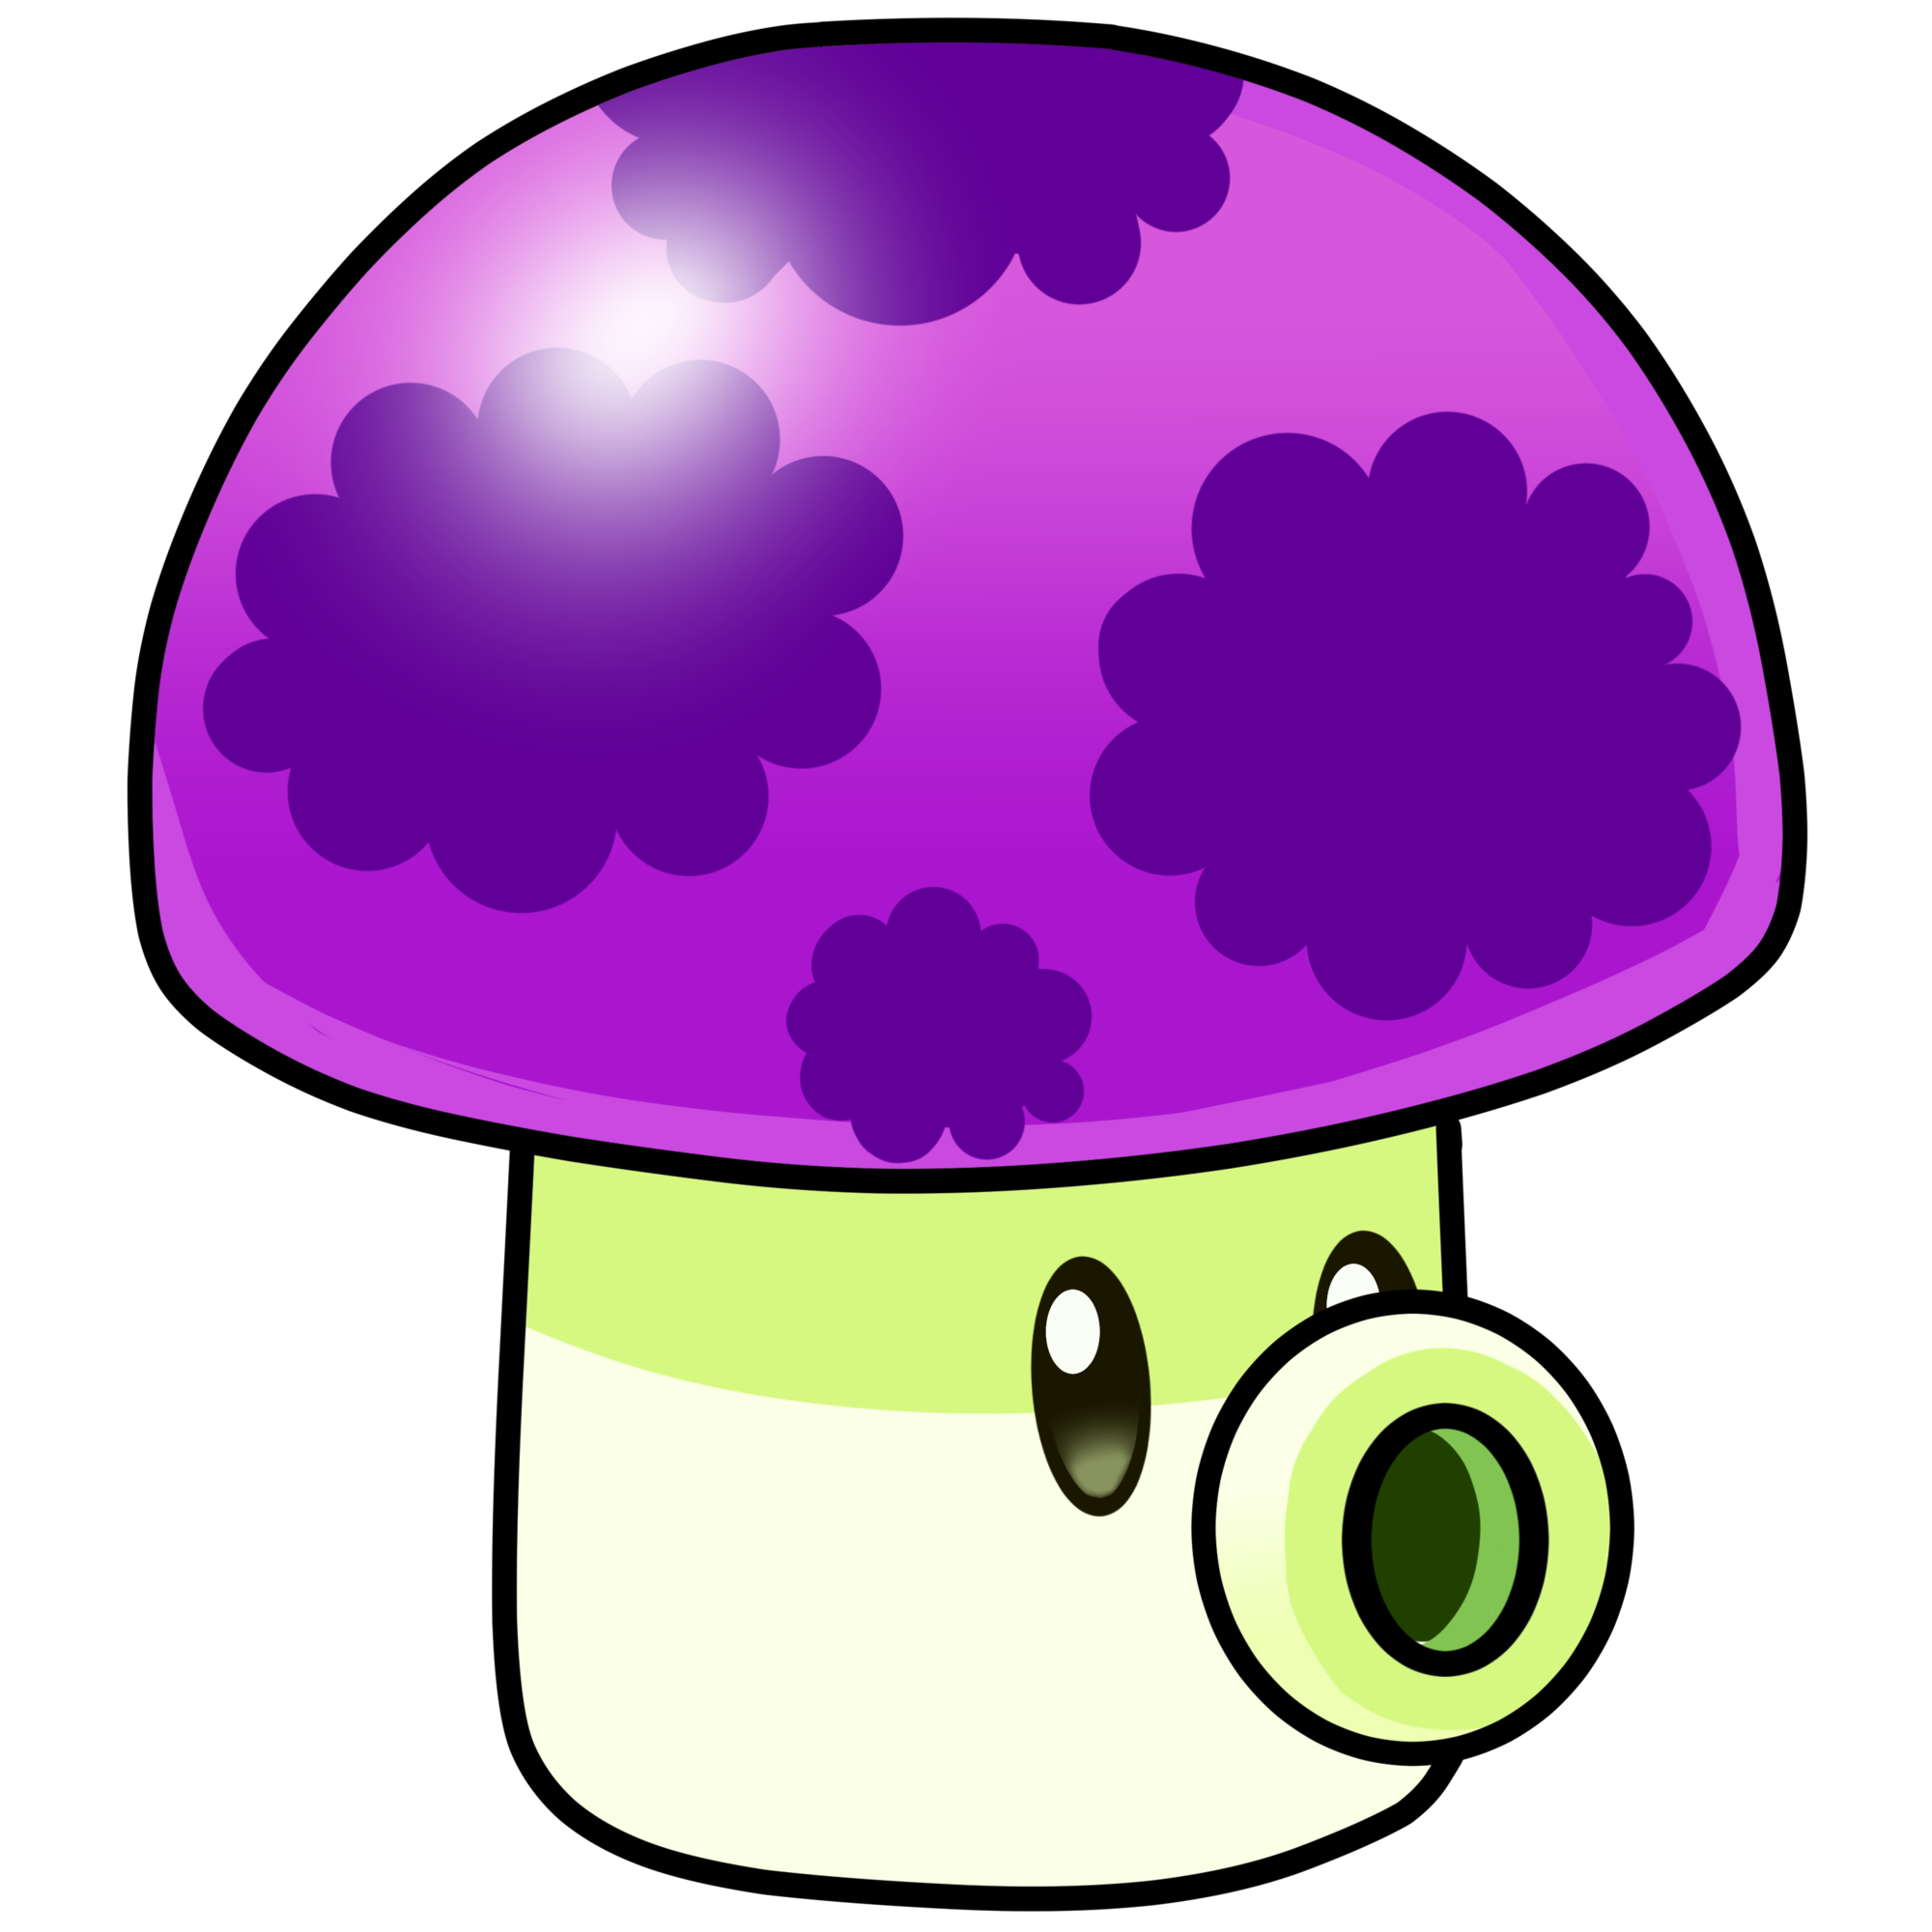 Mushrooms clipart trivia. Puff shroom plants vs